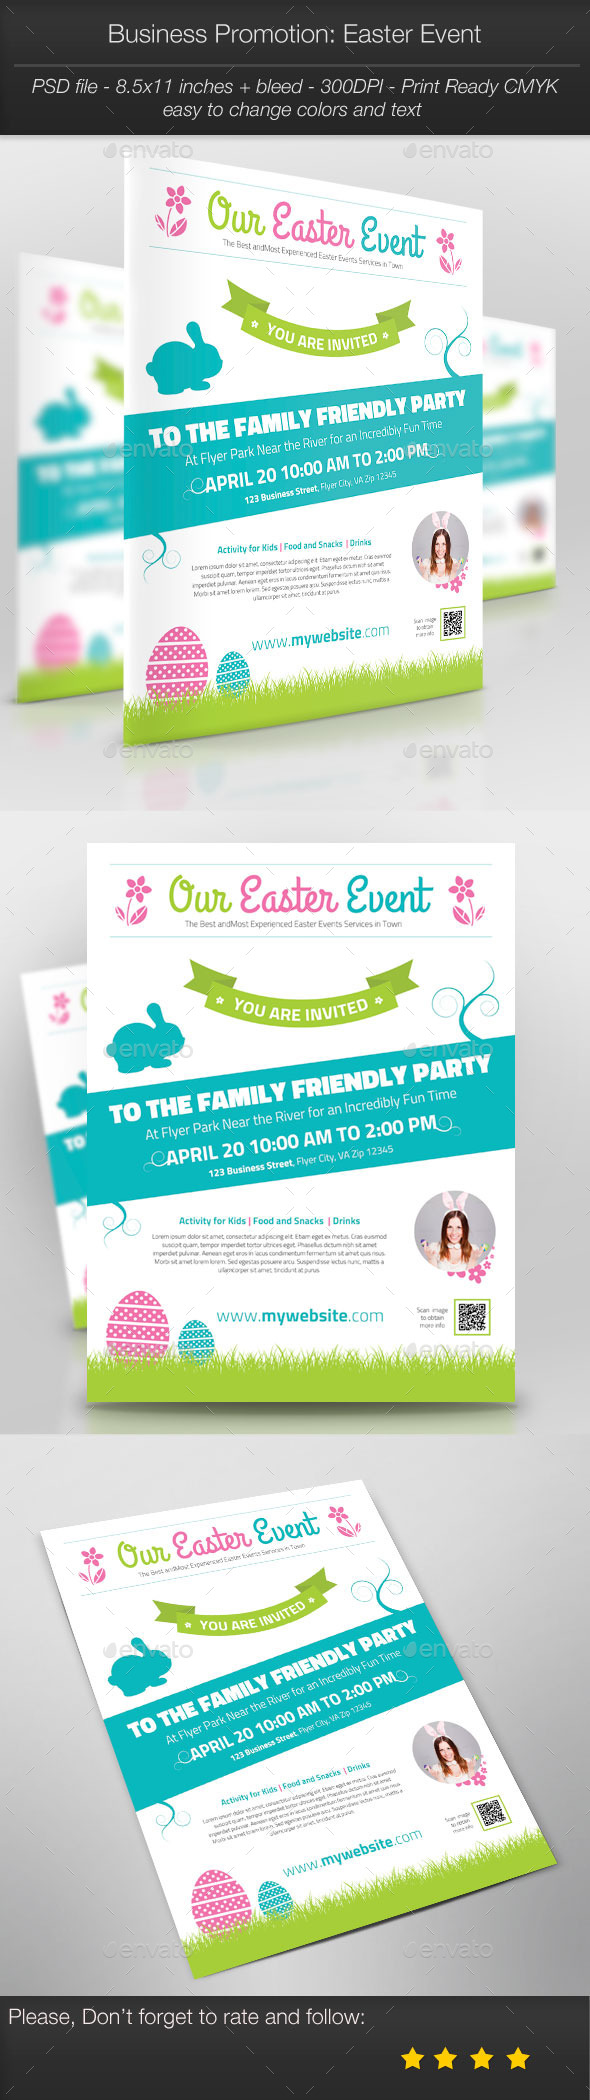 GraphicRiver Business Promotion Easter Event 10880581